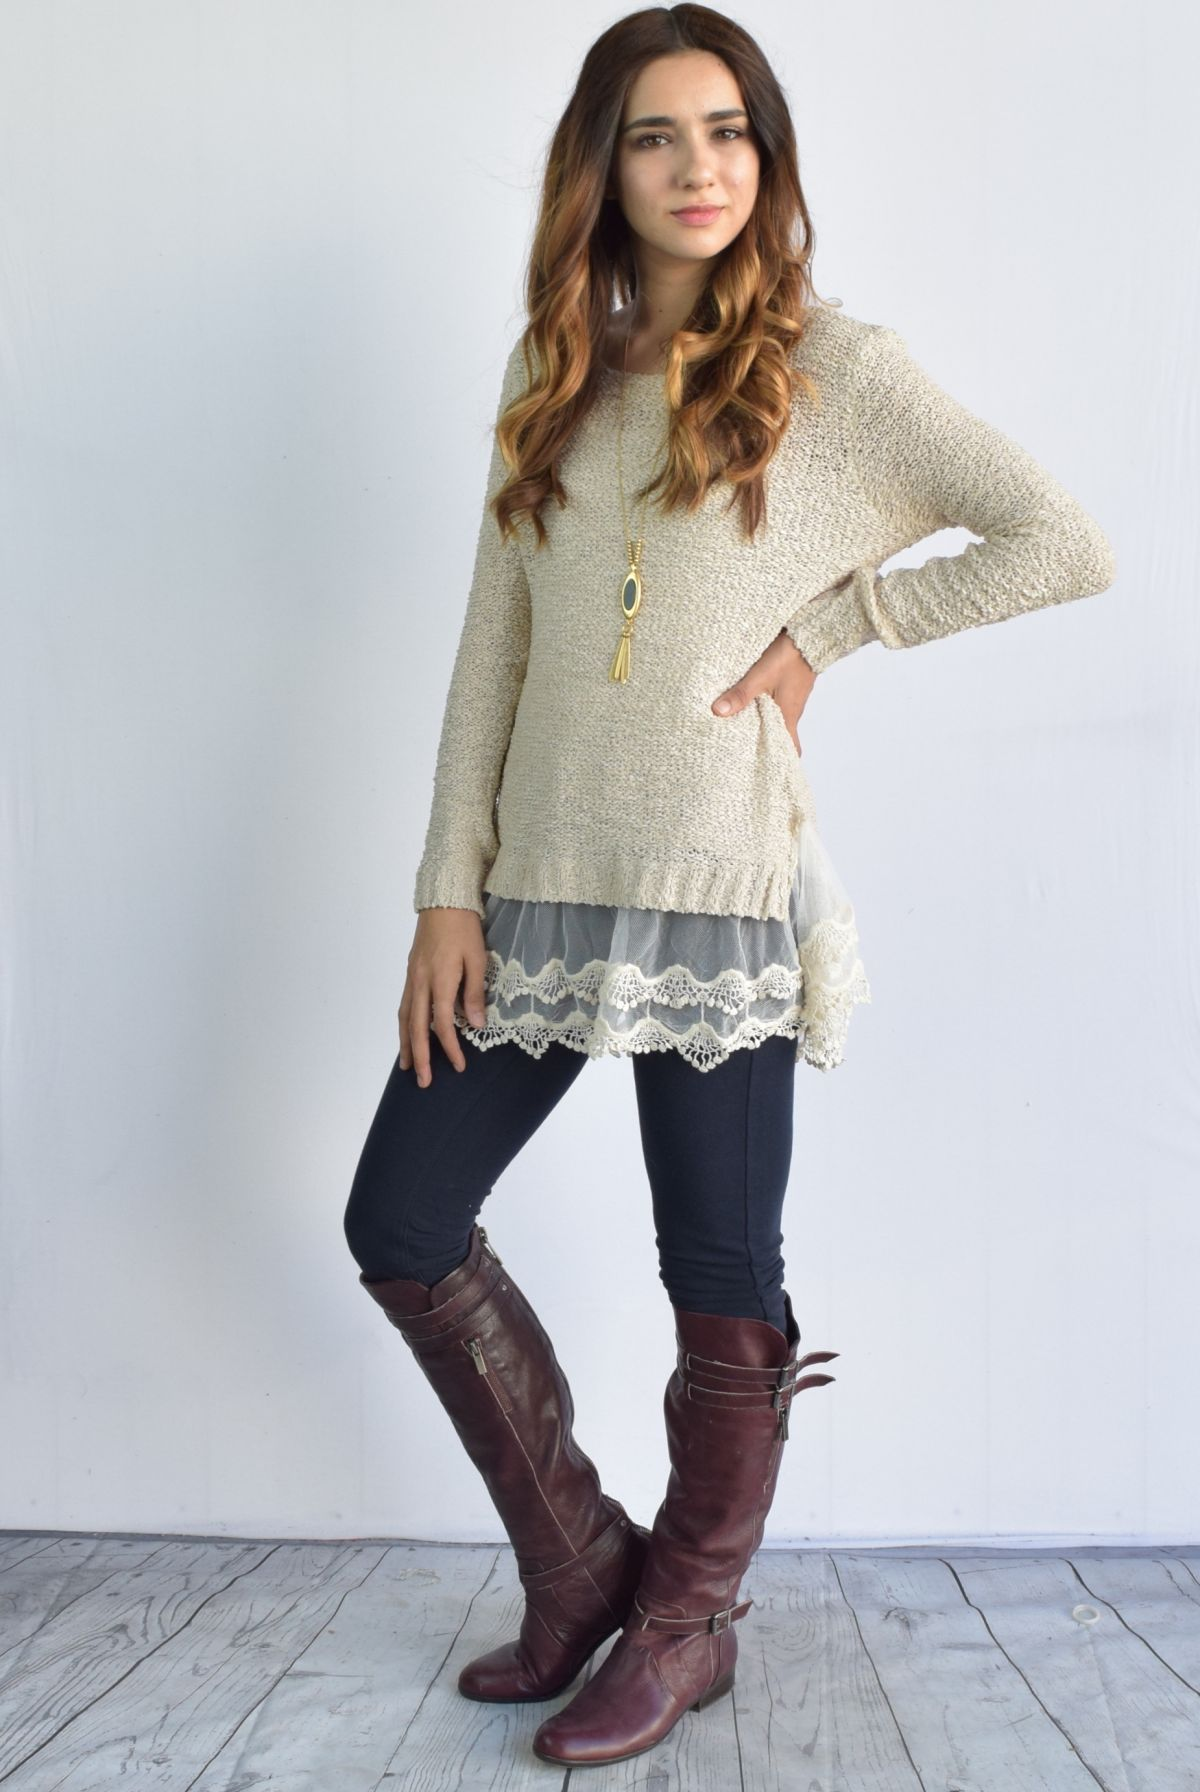 Crochet Trimmed Sweater Tunic - 2 Colors! - Photo 4